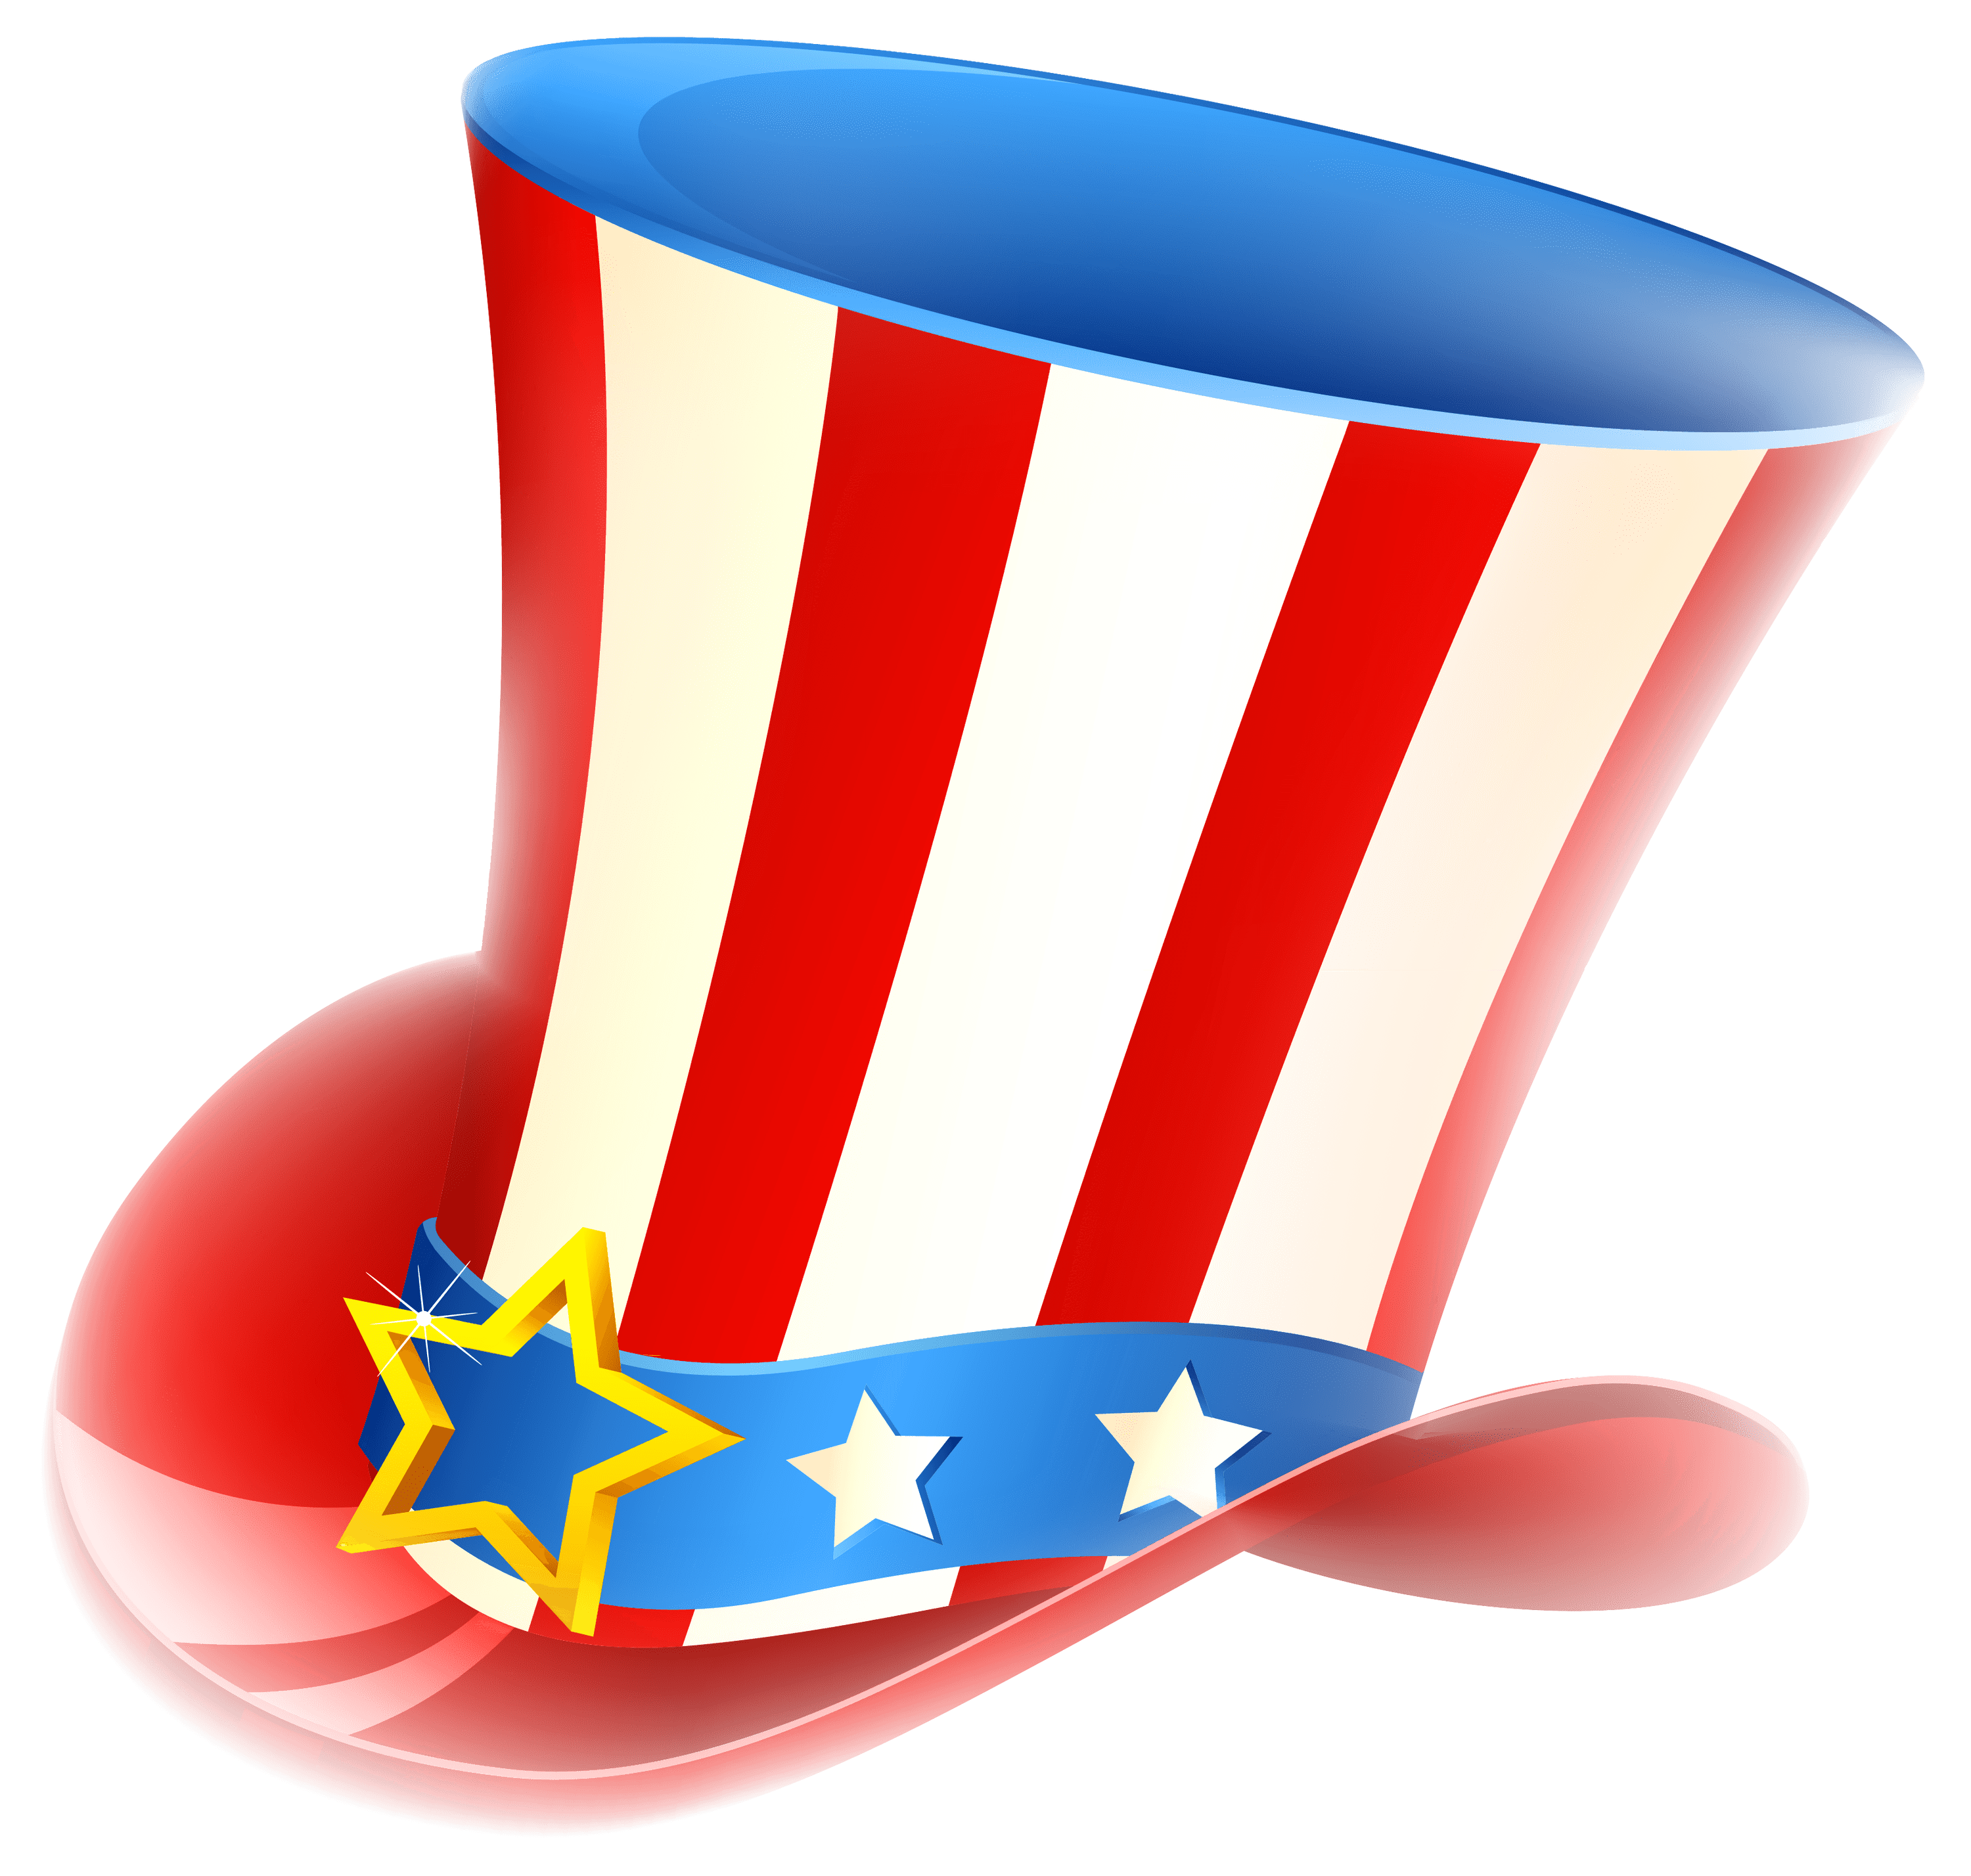 Happy fourth of uncle. Hats clipart 4th july